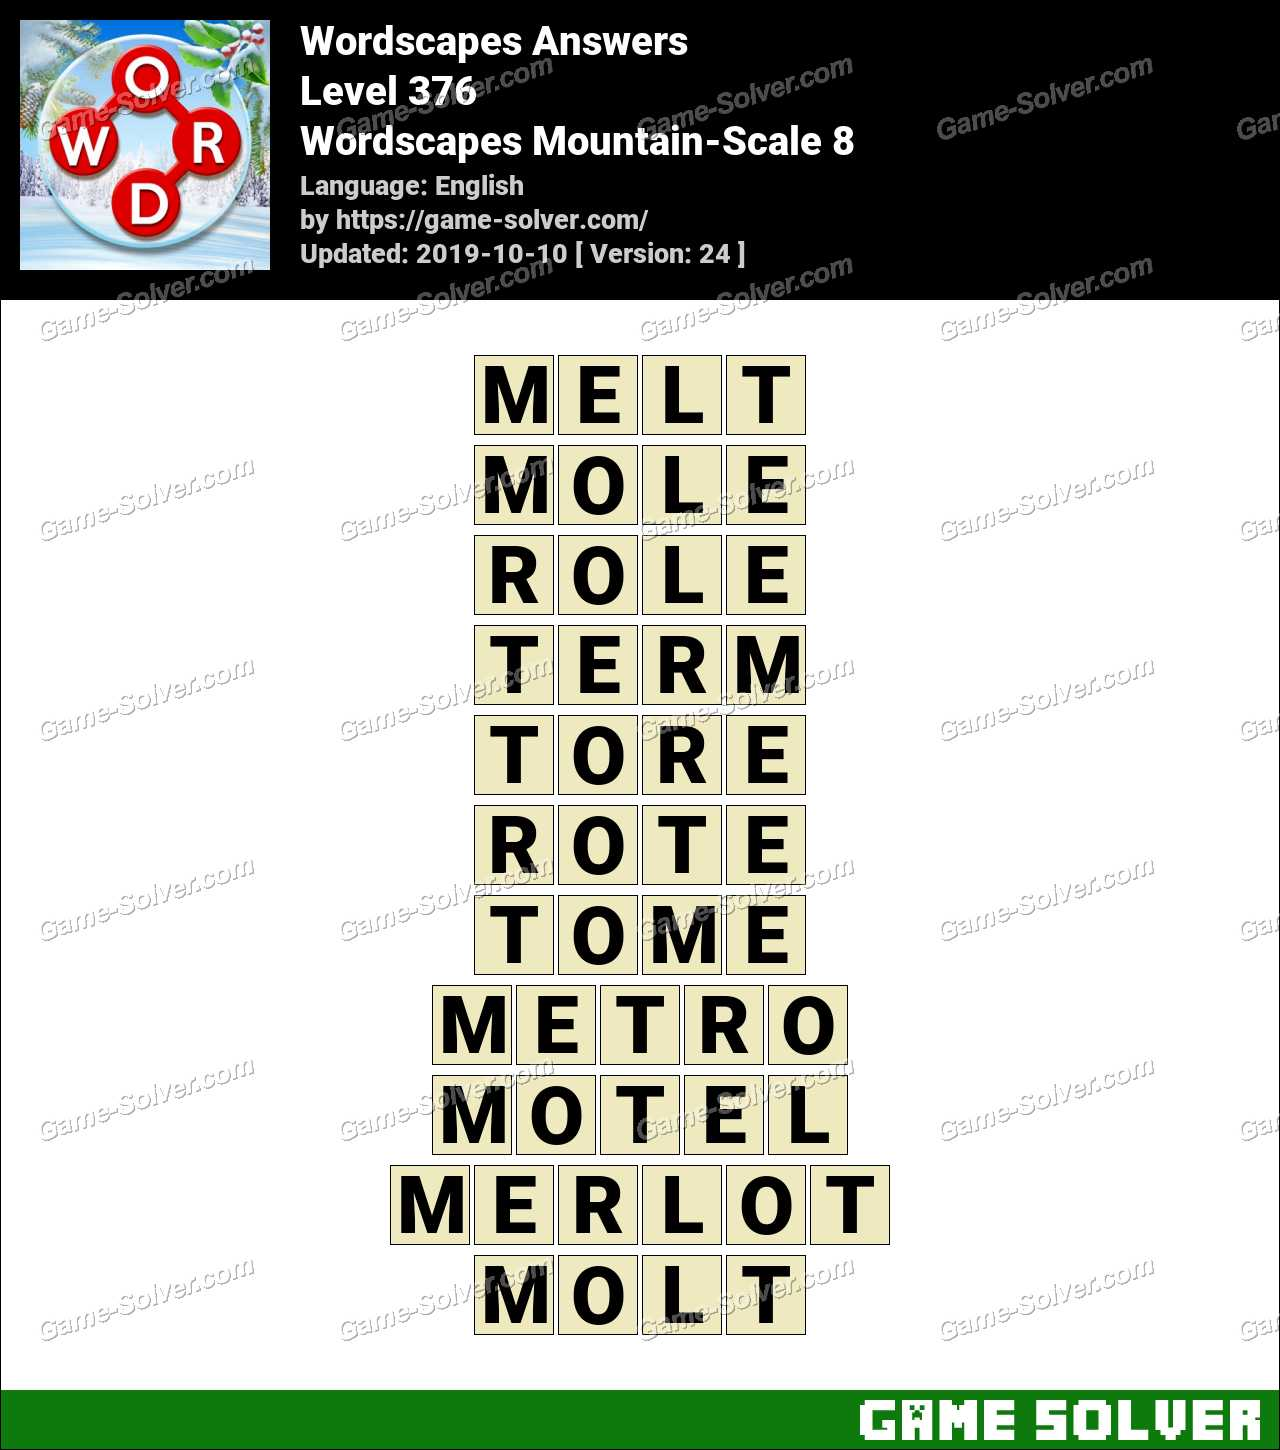 Wordscapes Mountain-Scale 8 Answers